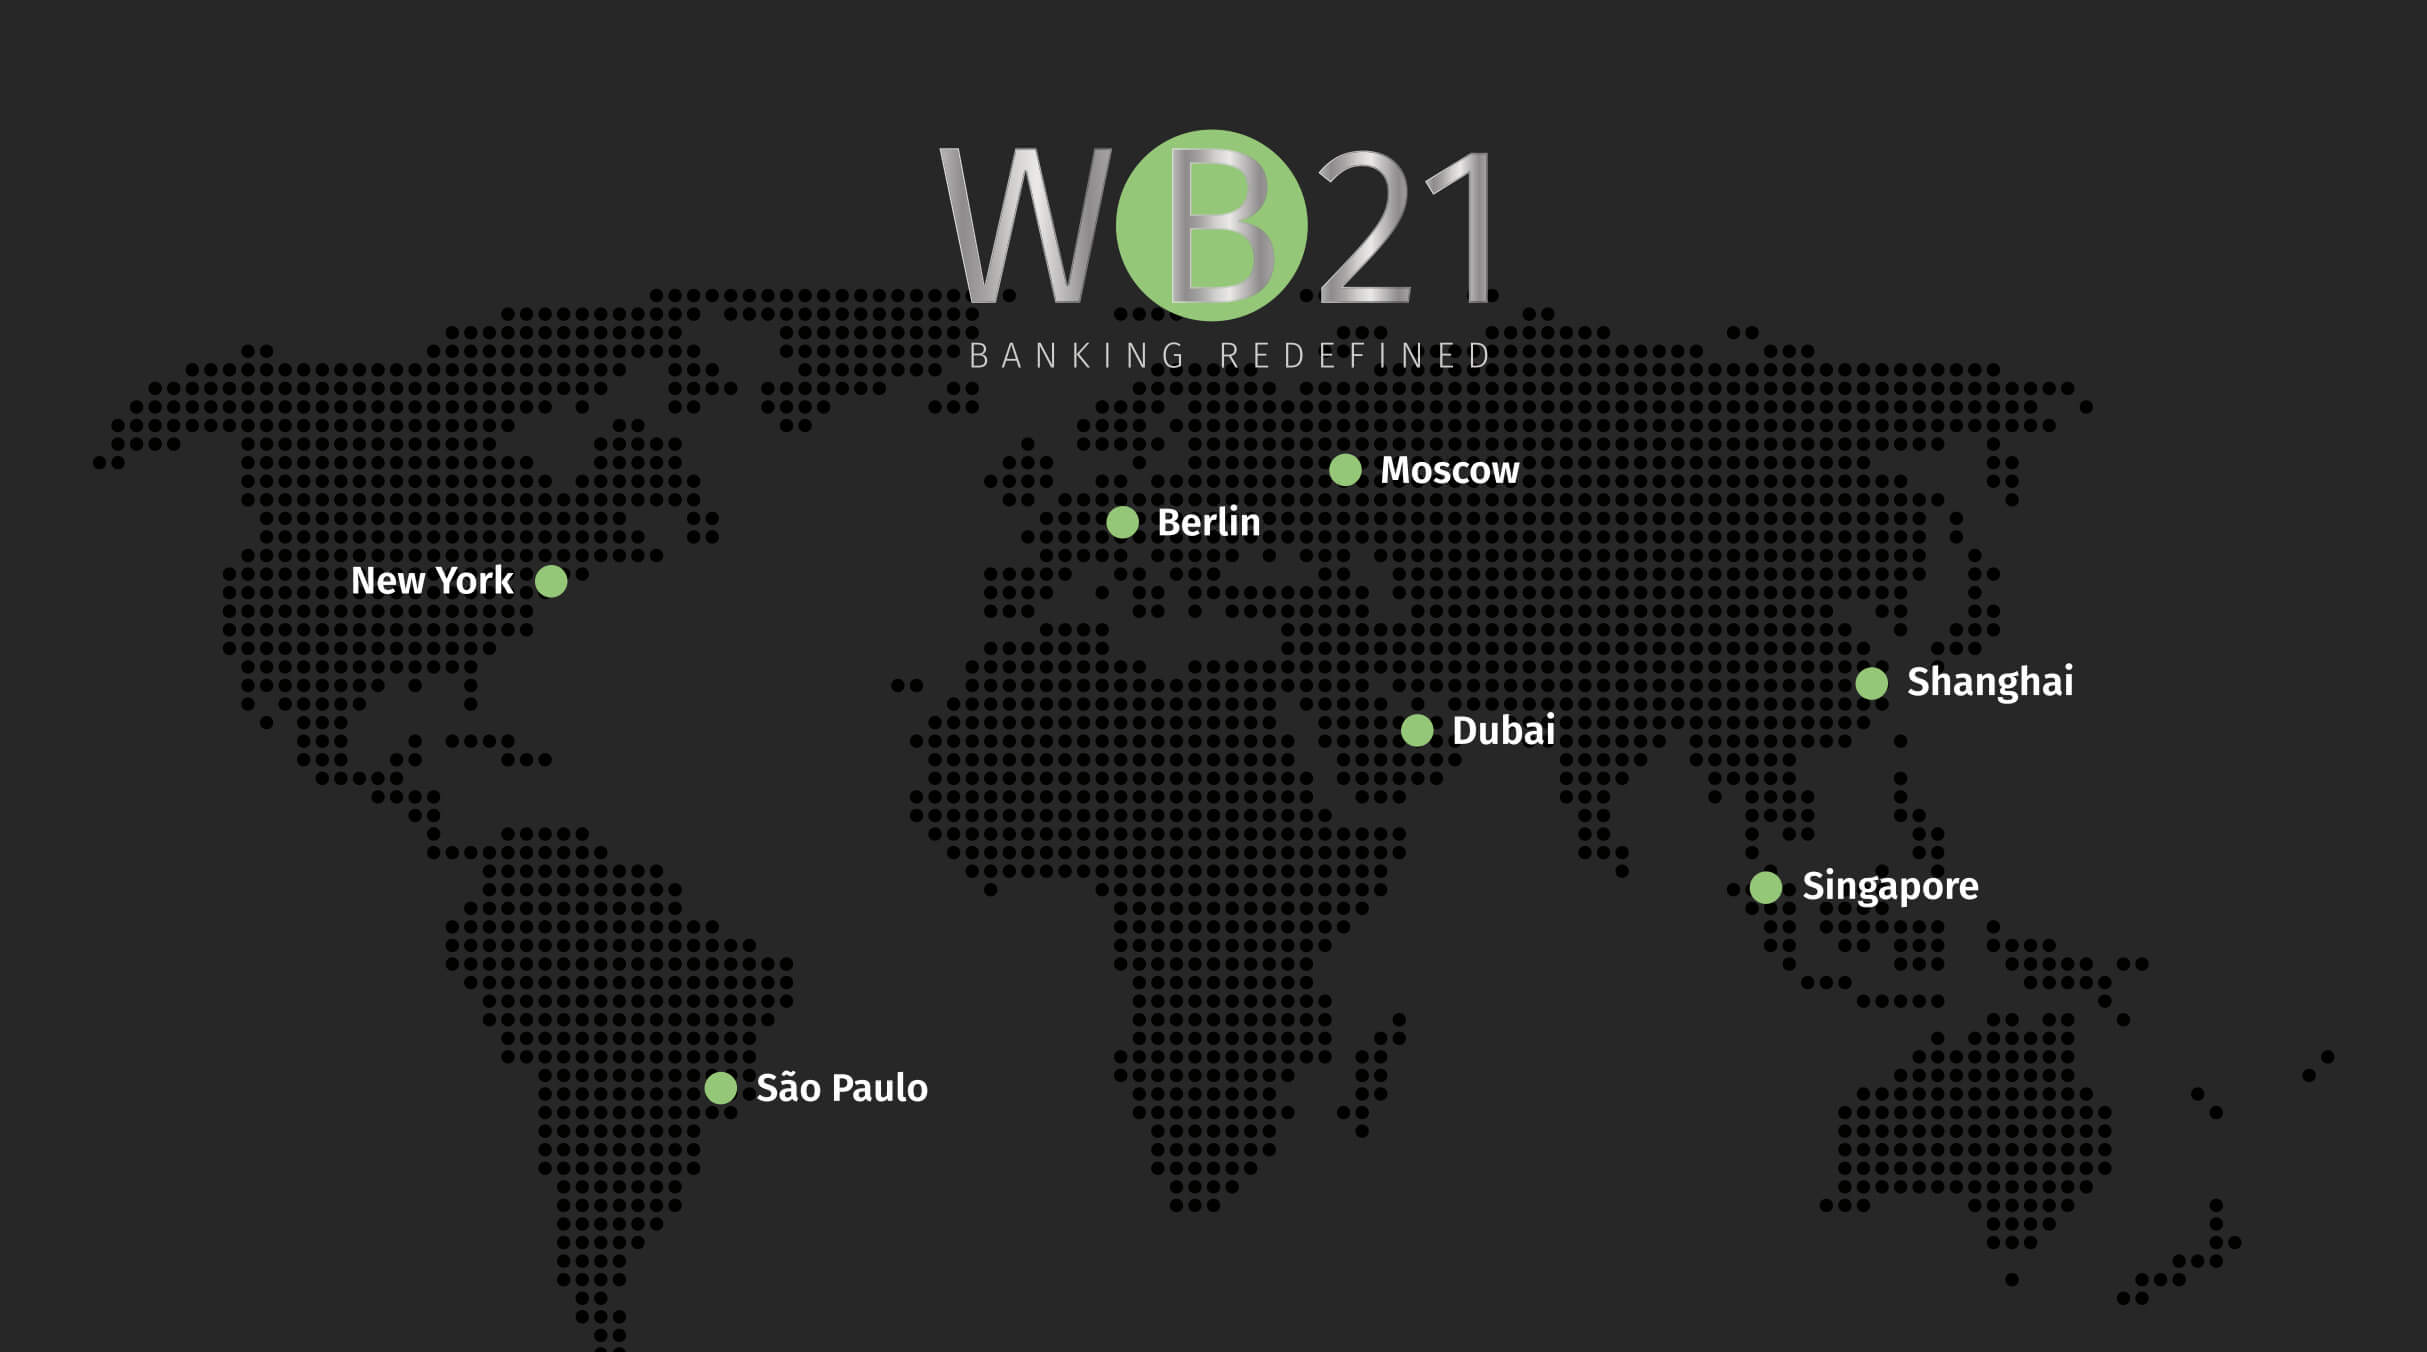 WB21 takes off; 14 days, 7 countries, 200,000+ customers